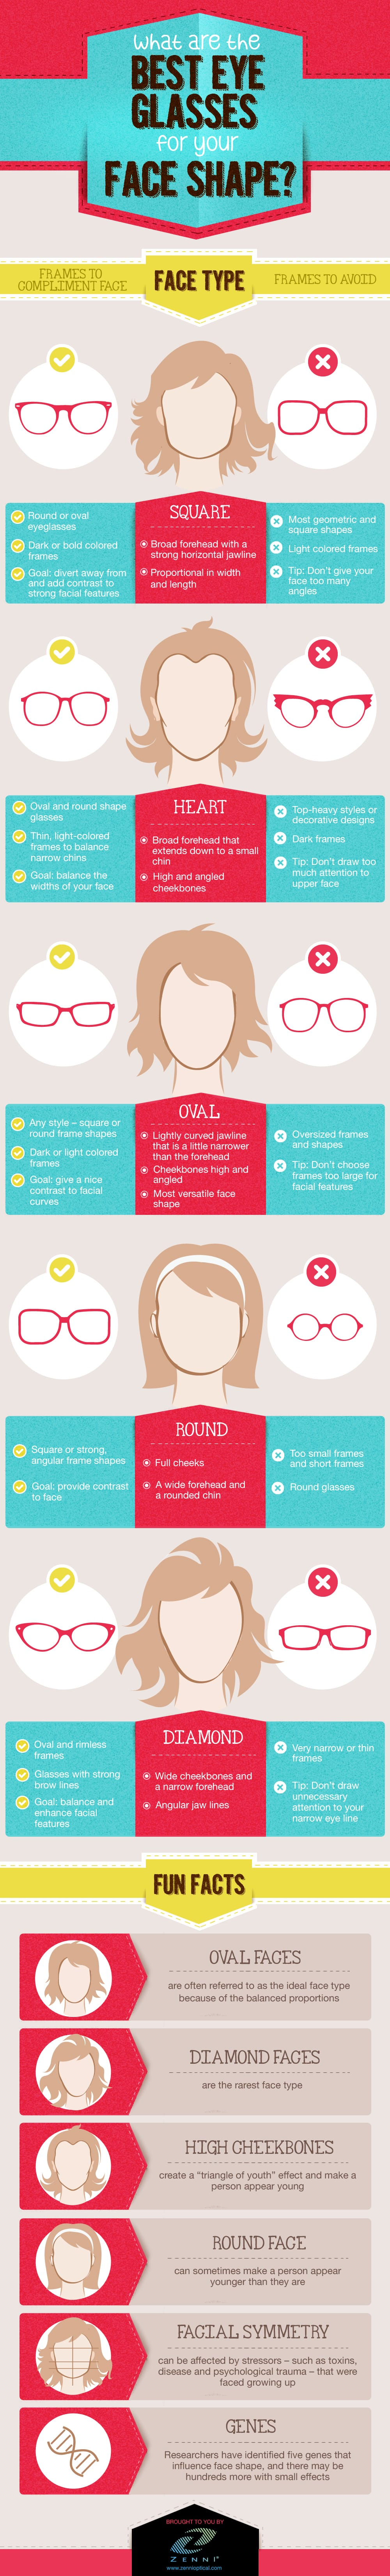 Best Glasses Frame For Face Shape : Best Eyeglasses for Your Face Shape Infographic Zenni ...